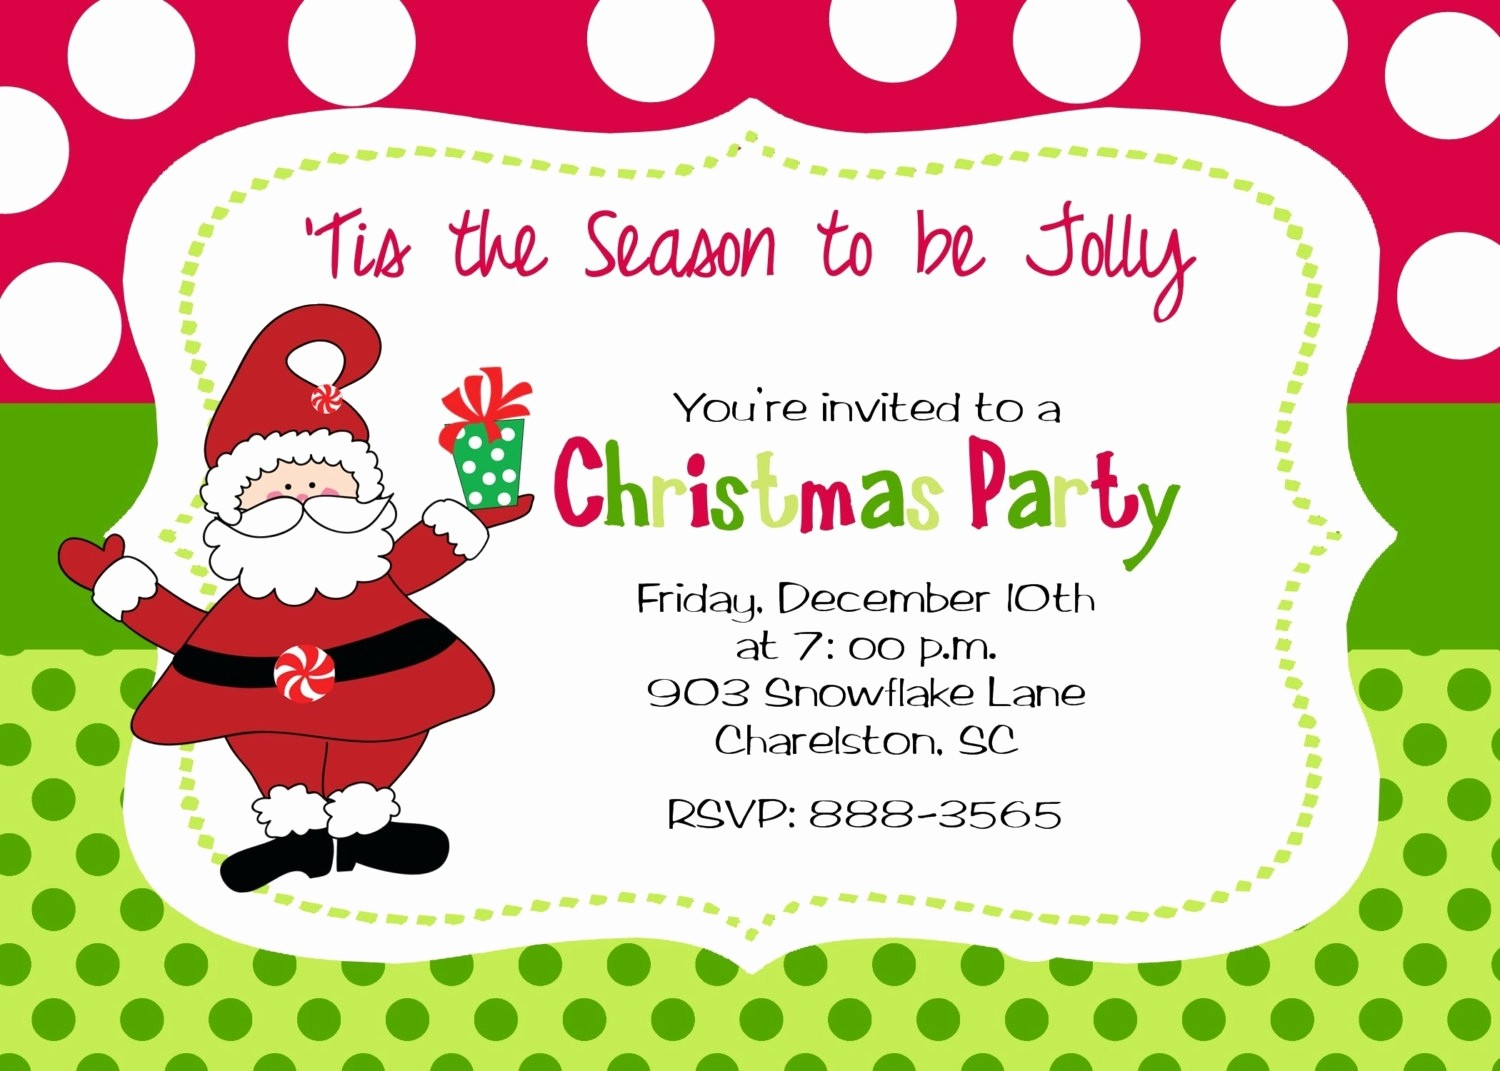 Christmas Party Invite Free Template Fresh Kids Christmas Party Invitations